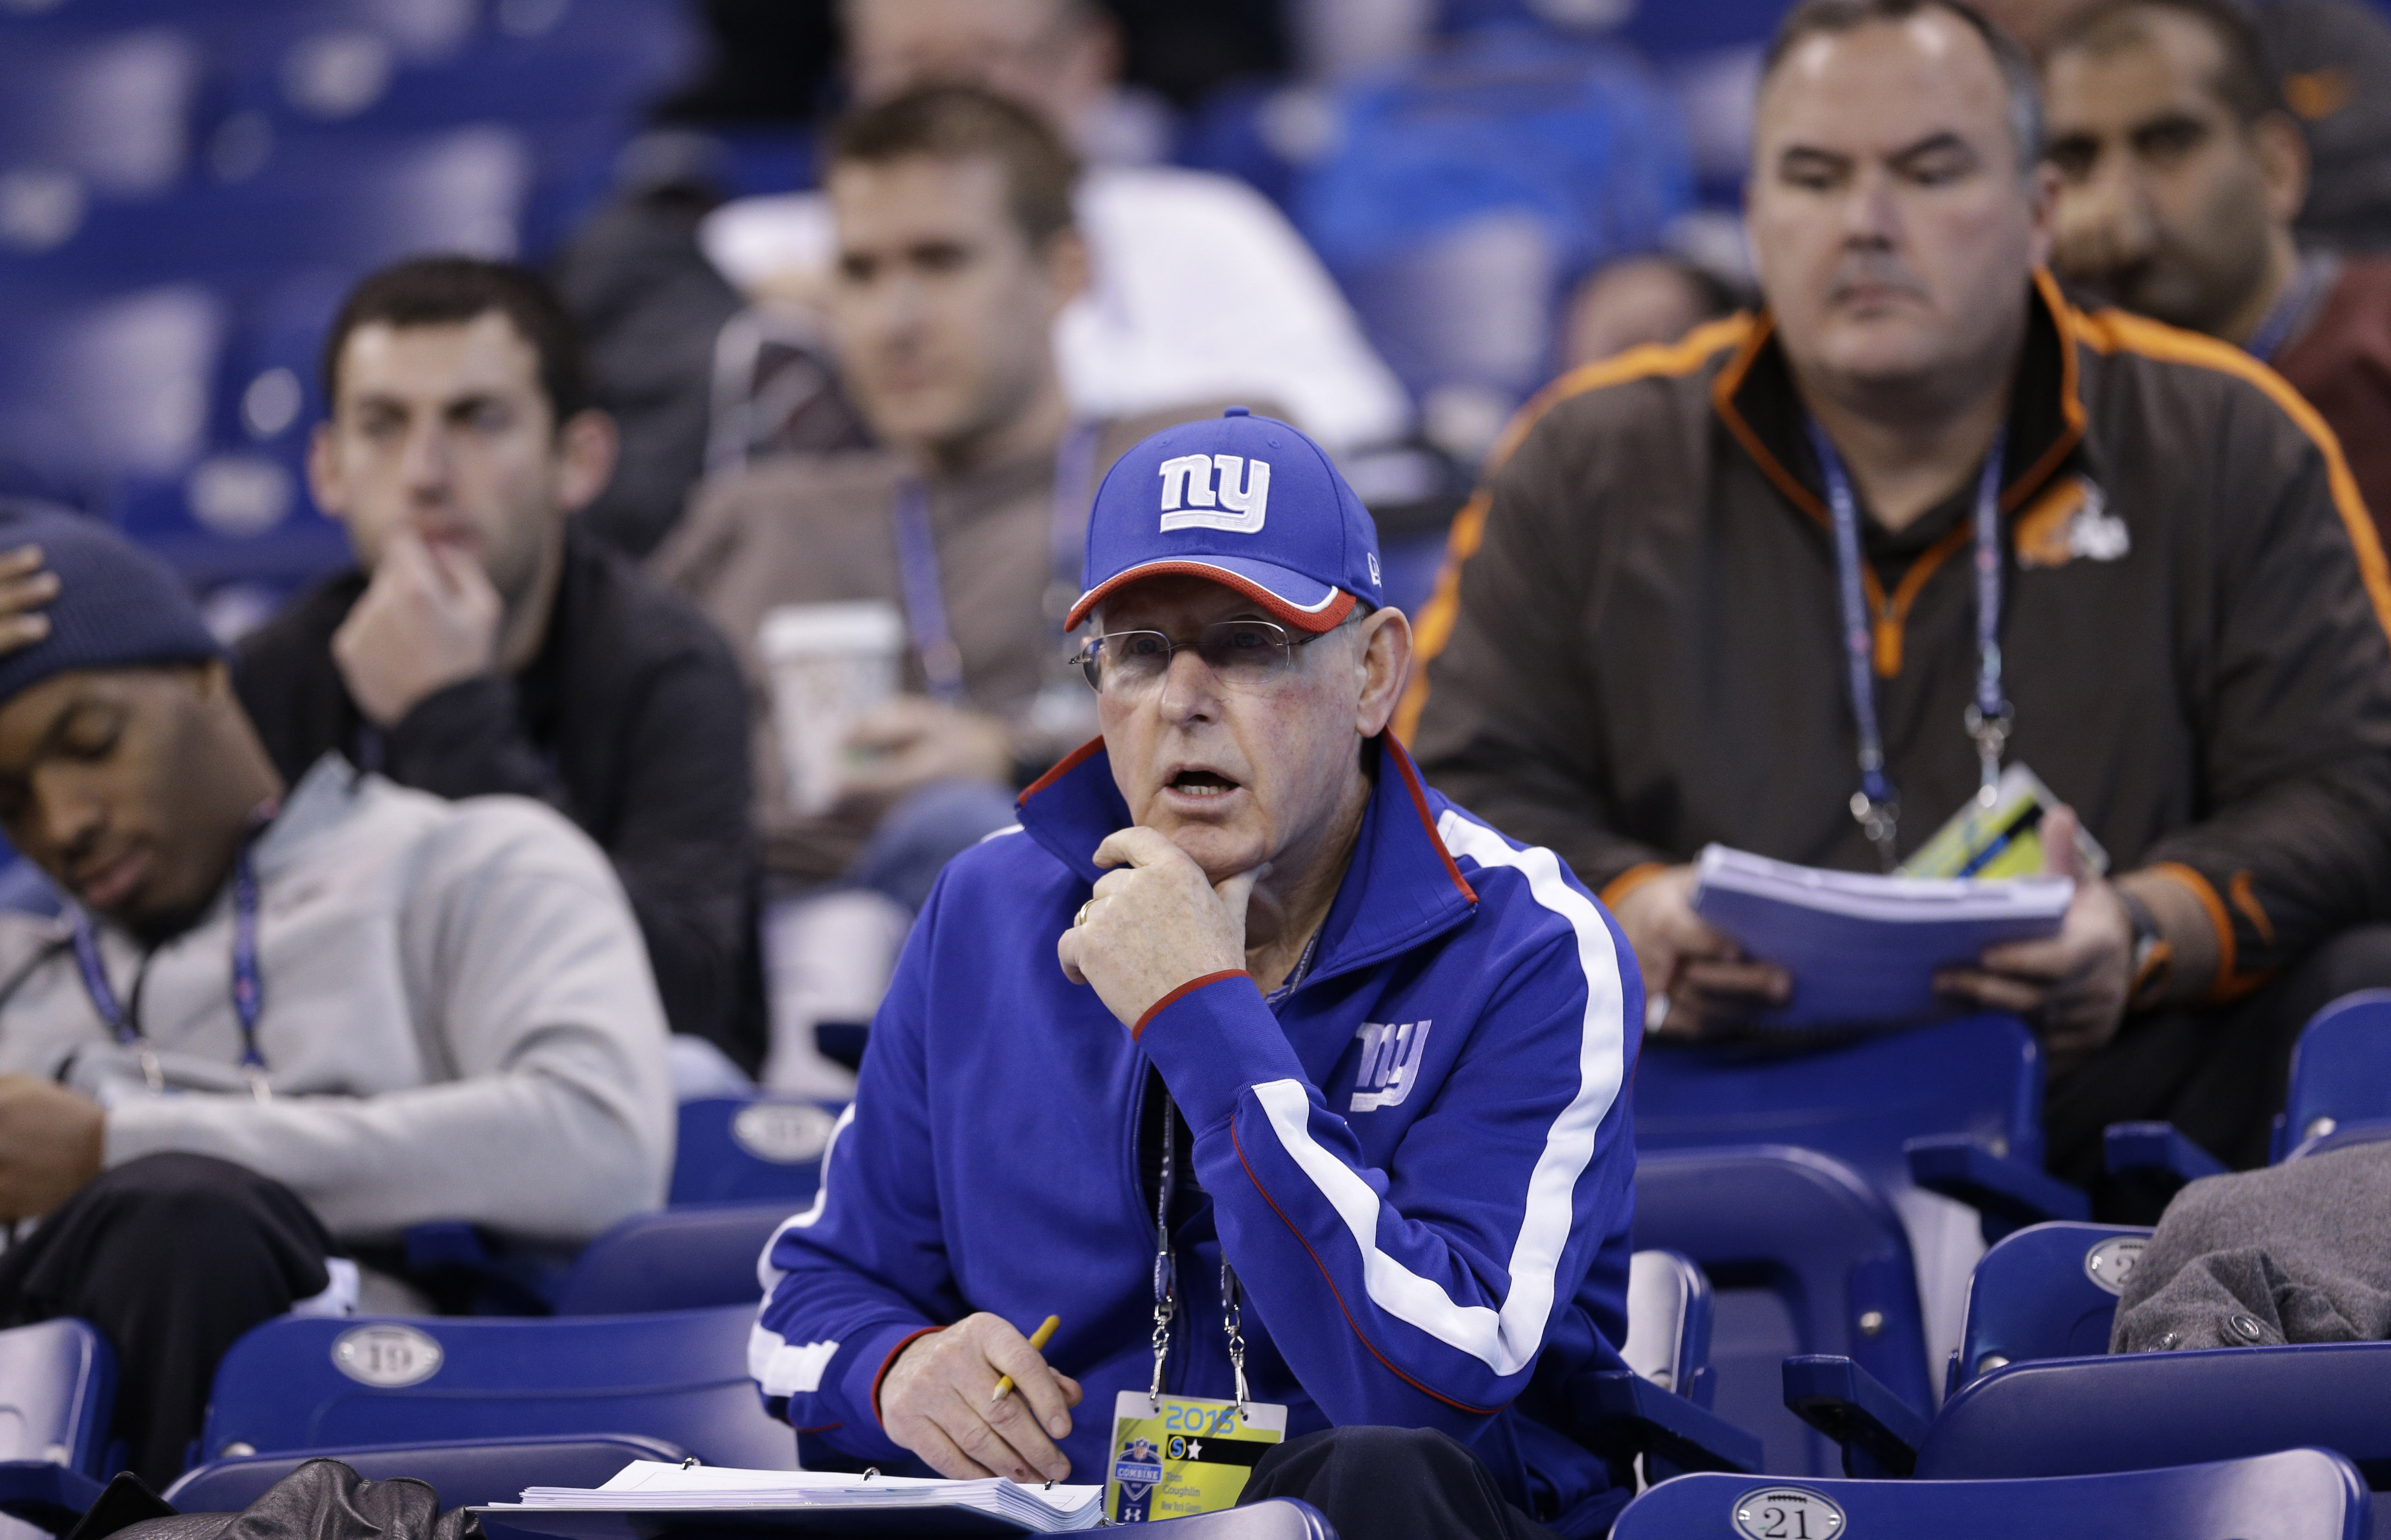 New York Giants coach Tom Coughlin watches quarterbacks and wide receivers run drills at the NFL football scouting combine in Indianapolis, Saturday, Feb. 21, 2015.